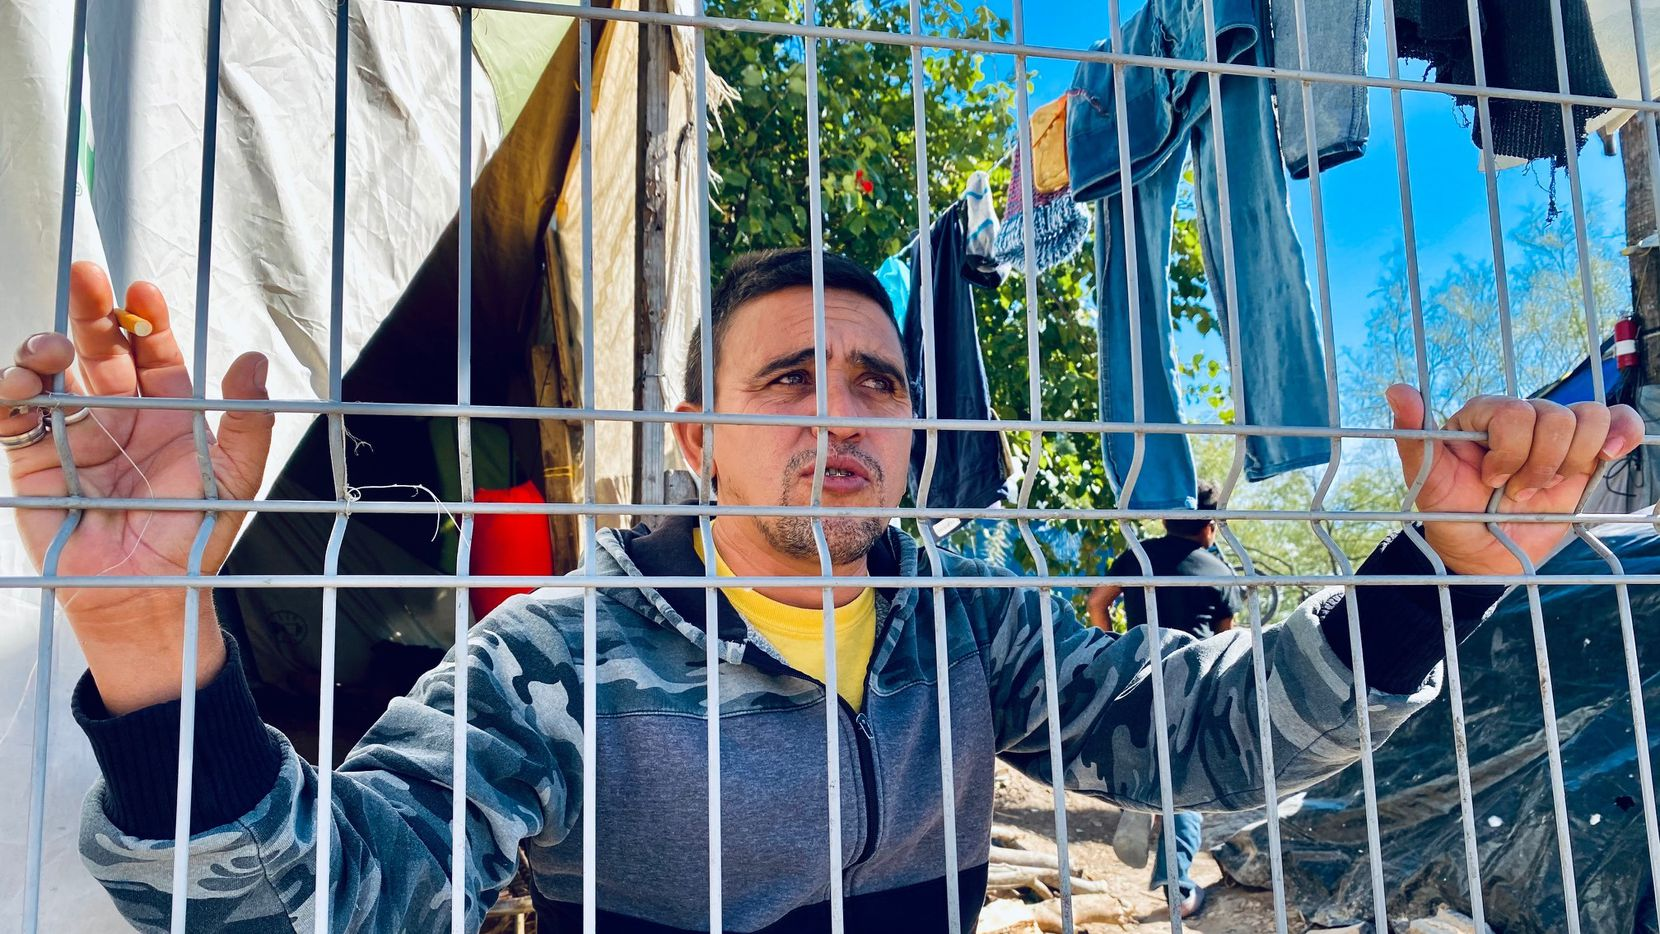 Roberto Valdivia has been stuck inside a migrant camp in Matamoros as part of a Trump-era policy, known as the Migrant Protection Protocols. Valdivia hopes the program ends under the new administration of President Joe Biden.